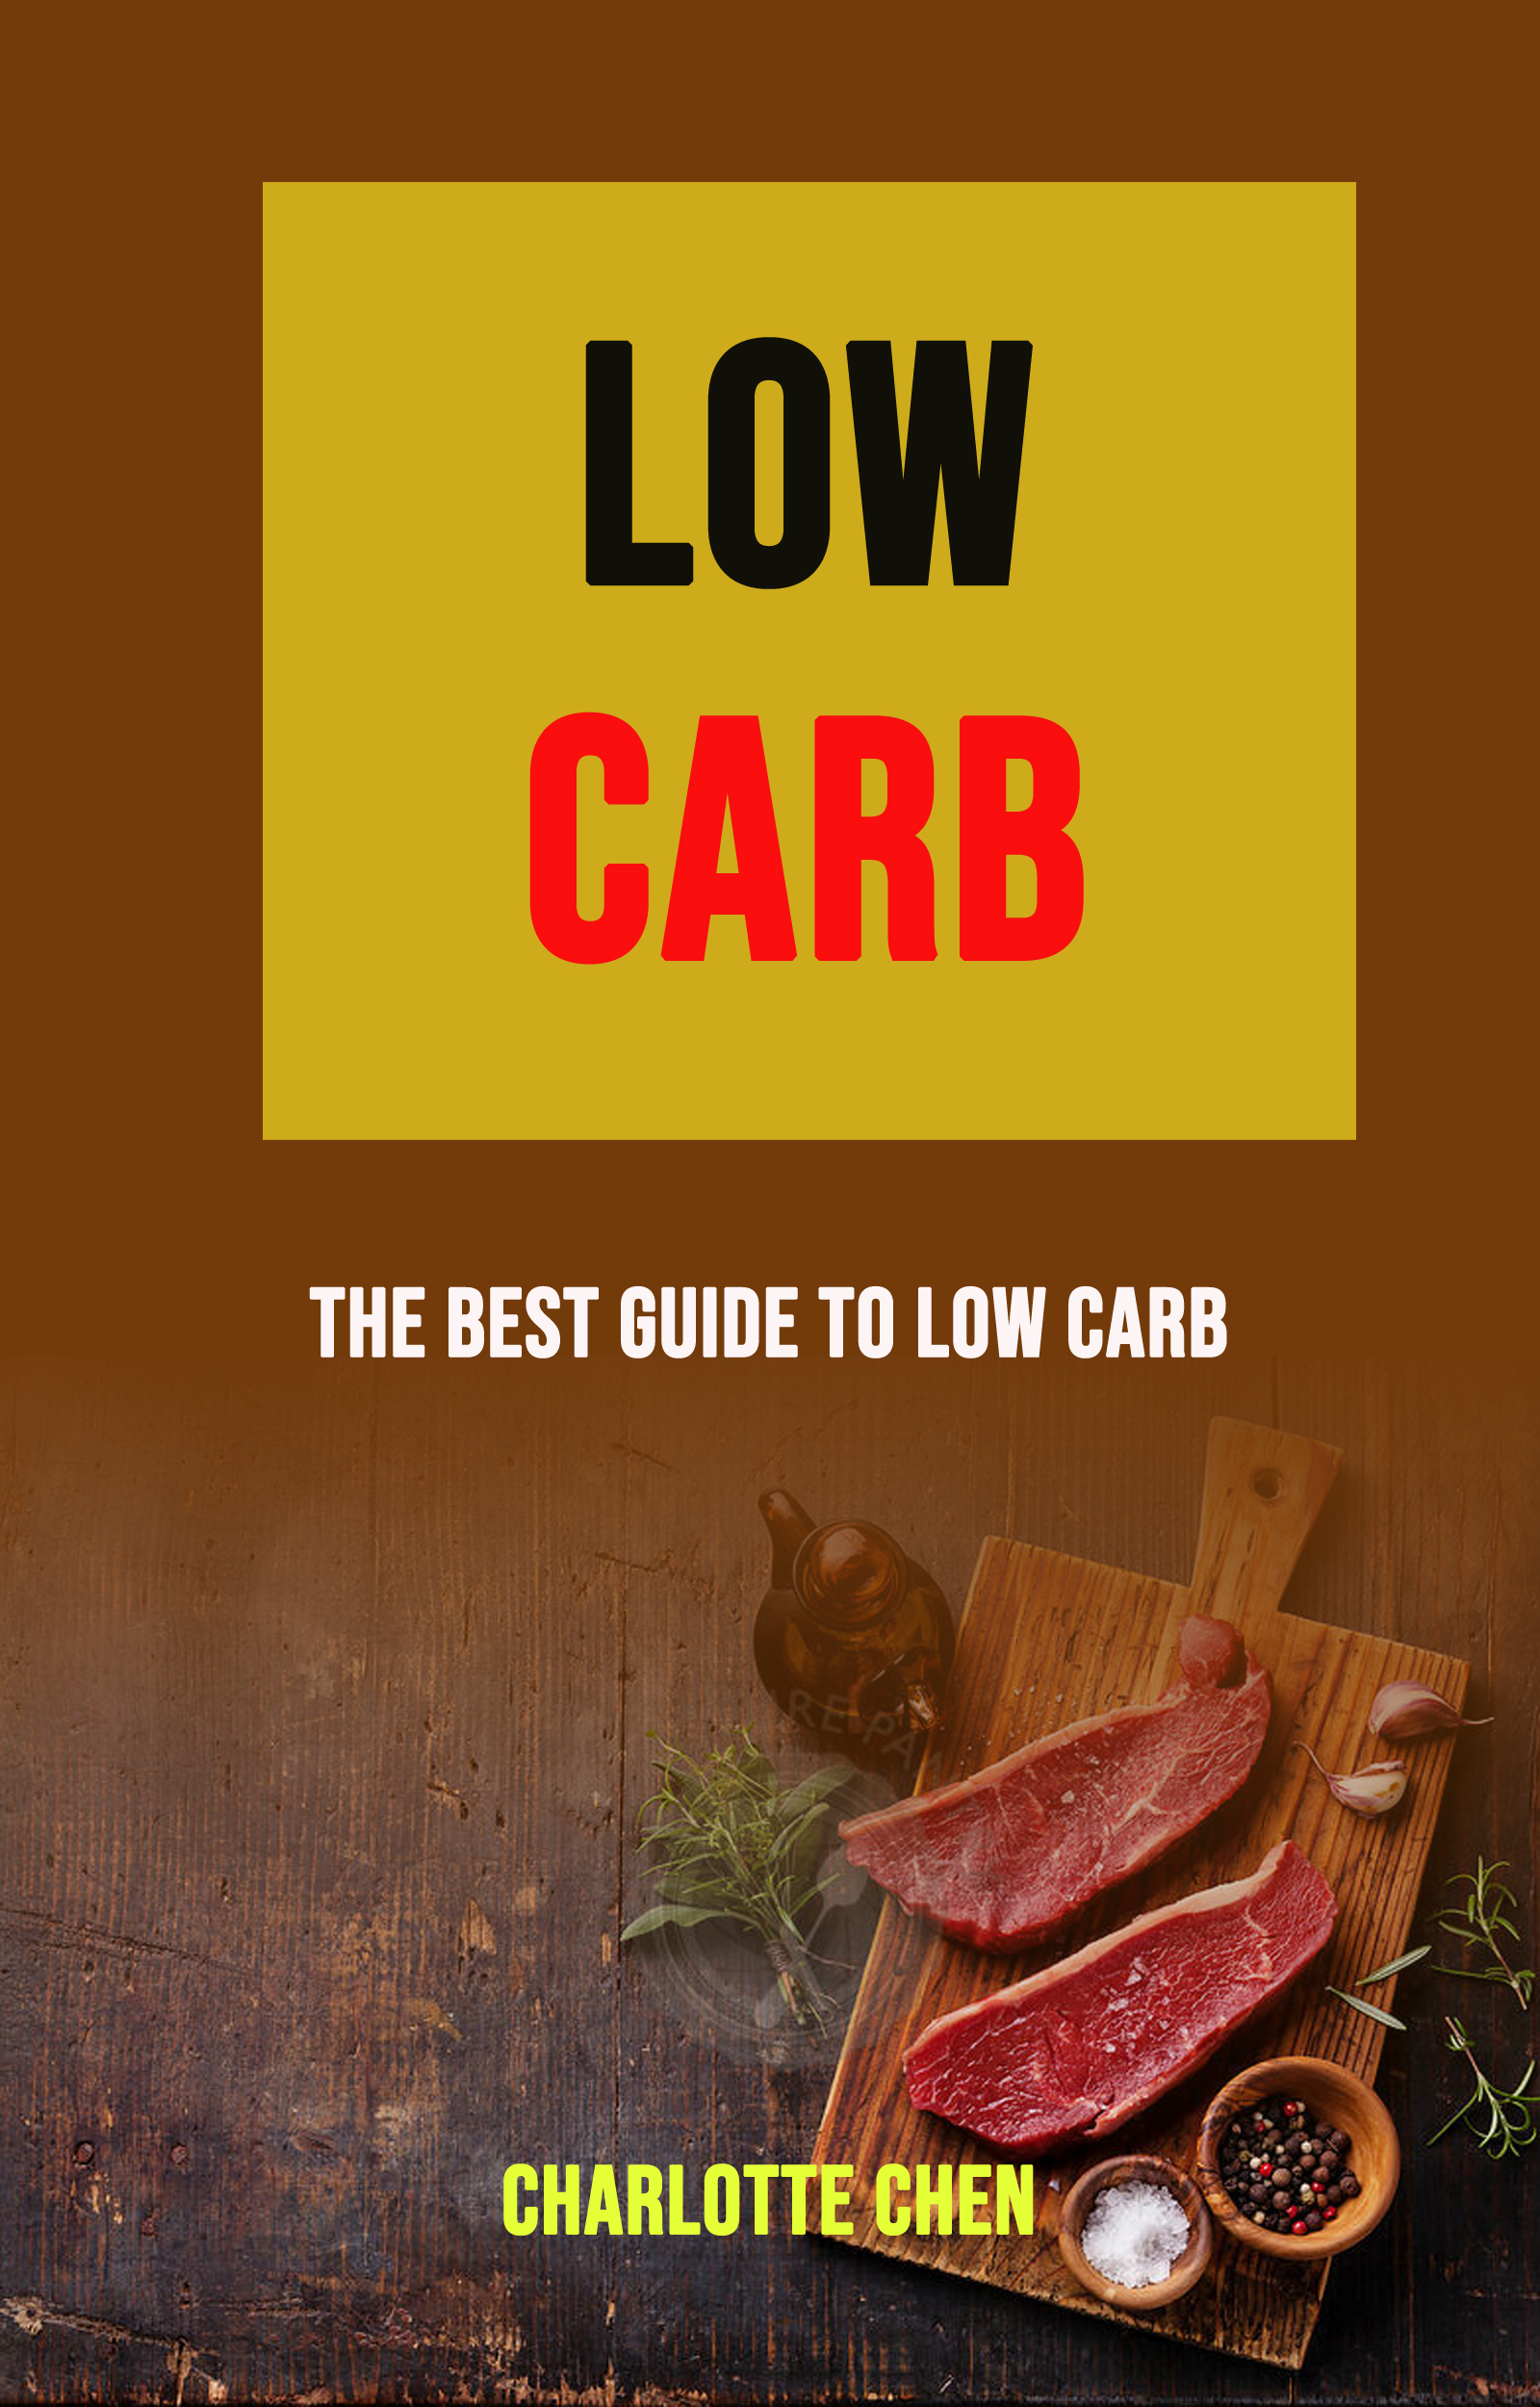 Low carb: the best guide to low carb